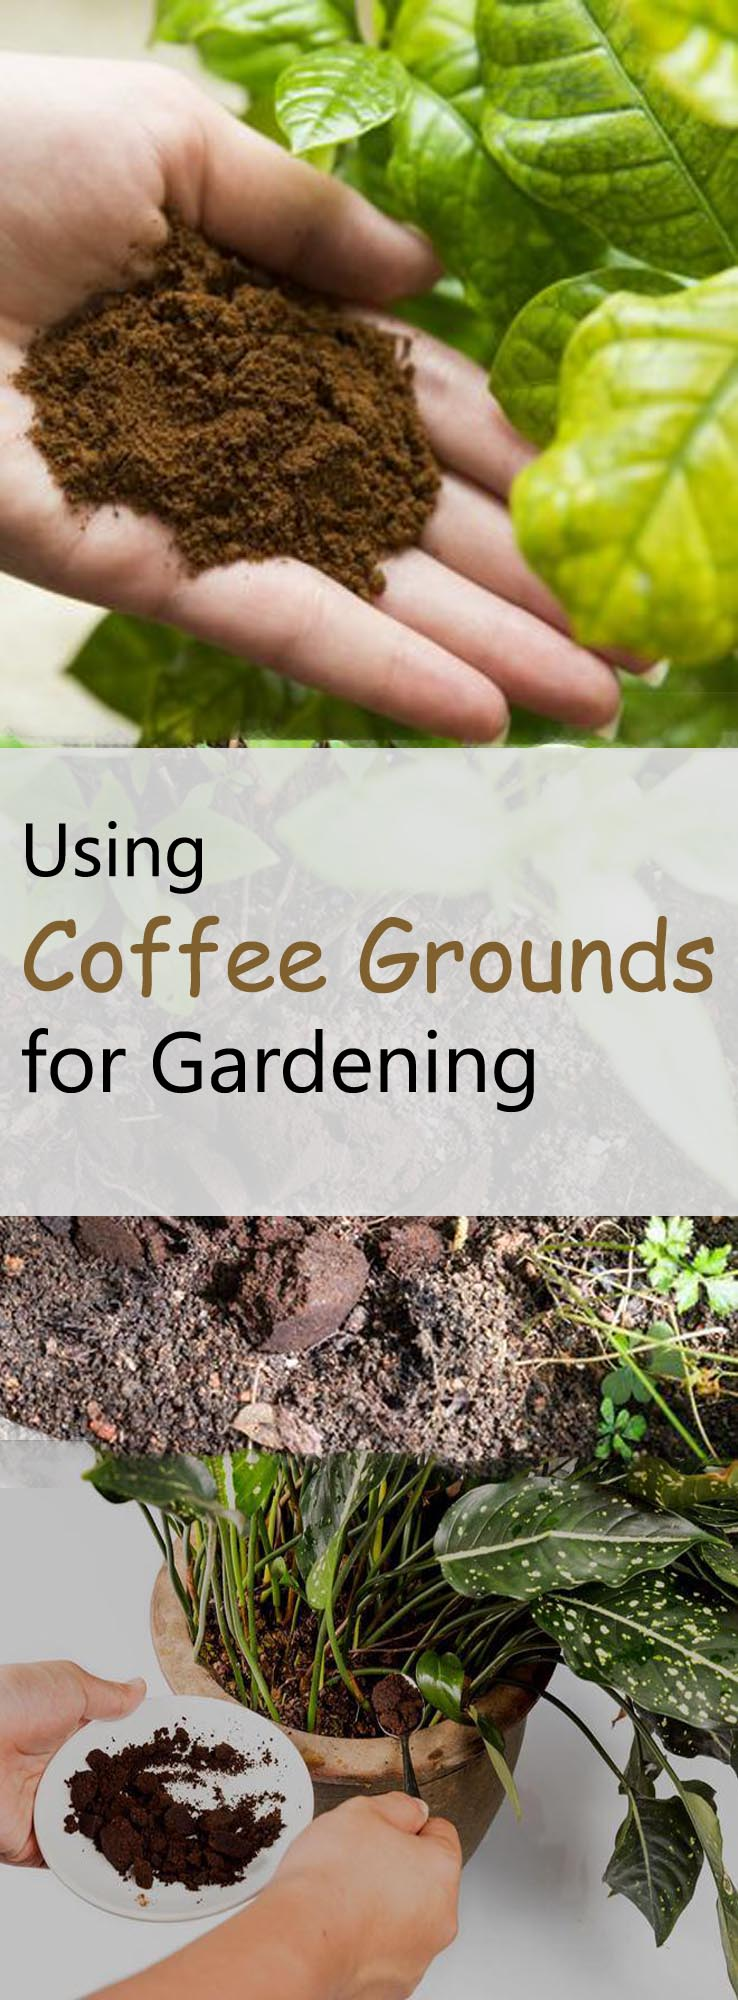 How to use coffee grounds correctly on the garden dan330 for How to use coffee grounds in garden